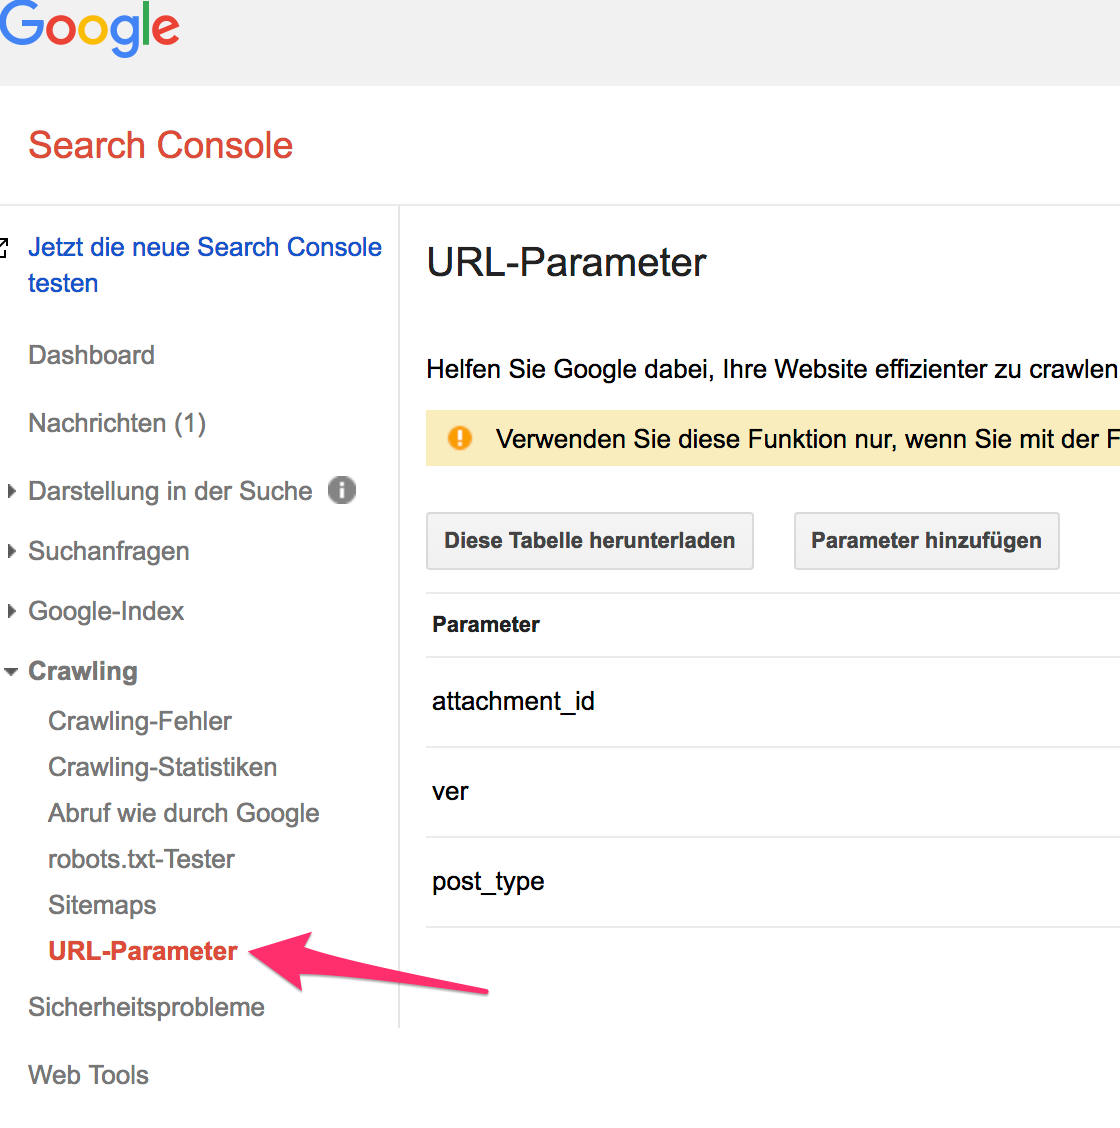 Google Search Console - URL-Parameter - replytocom